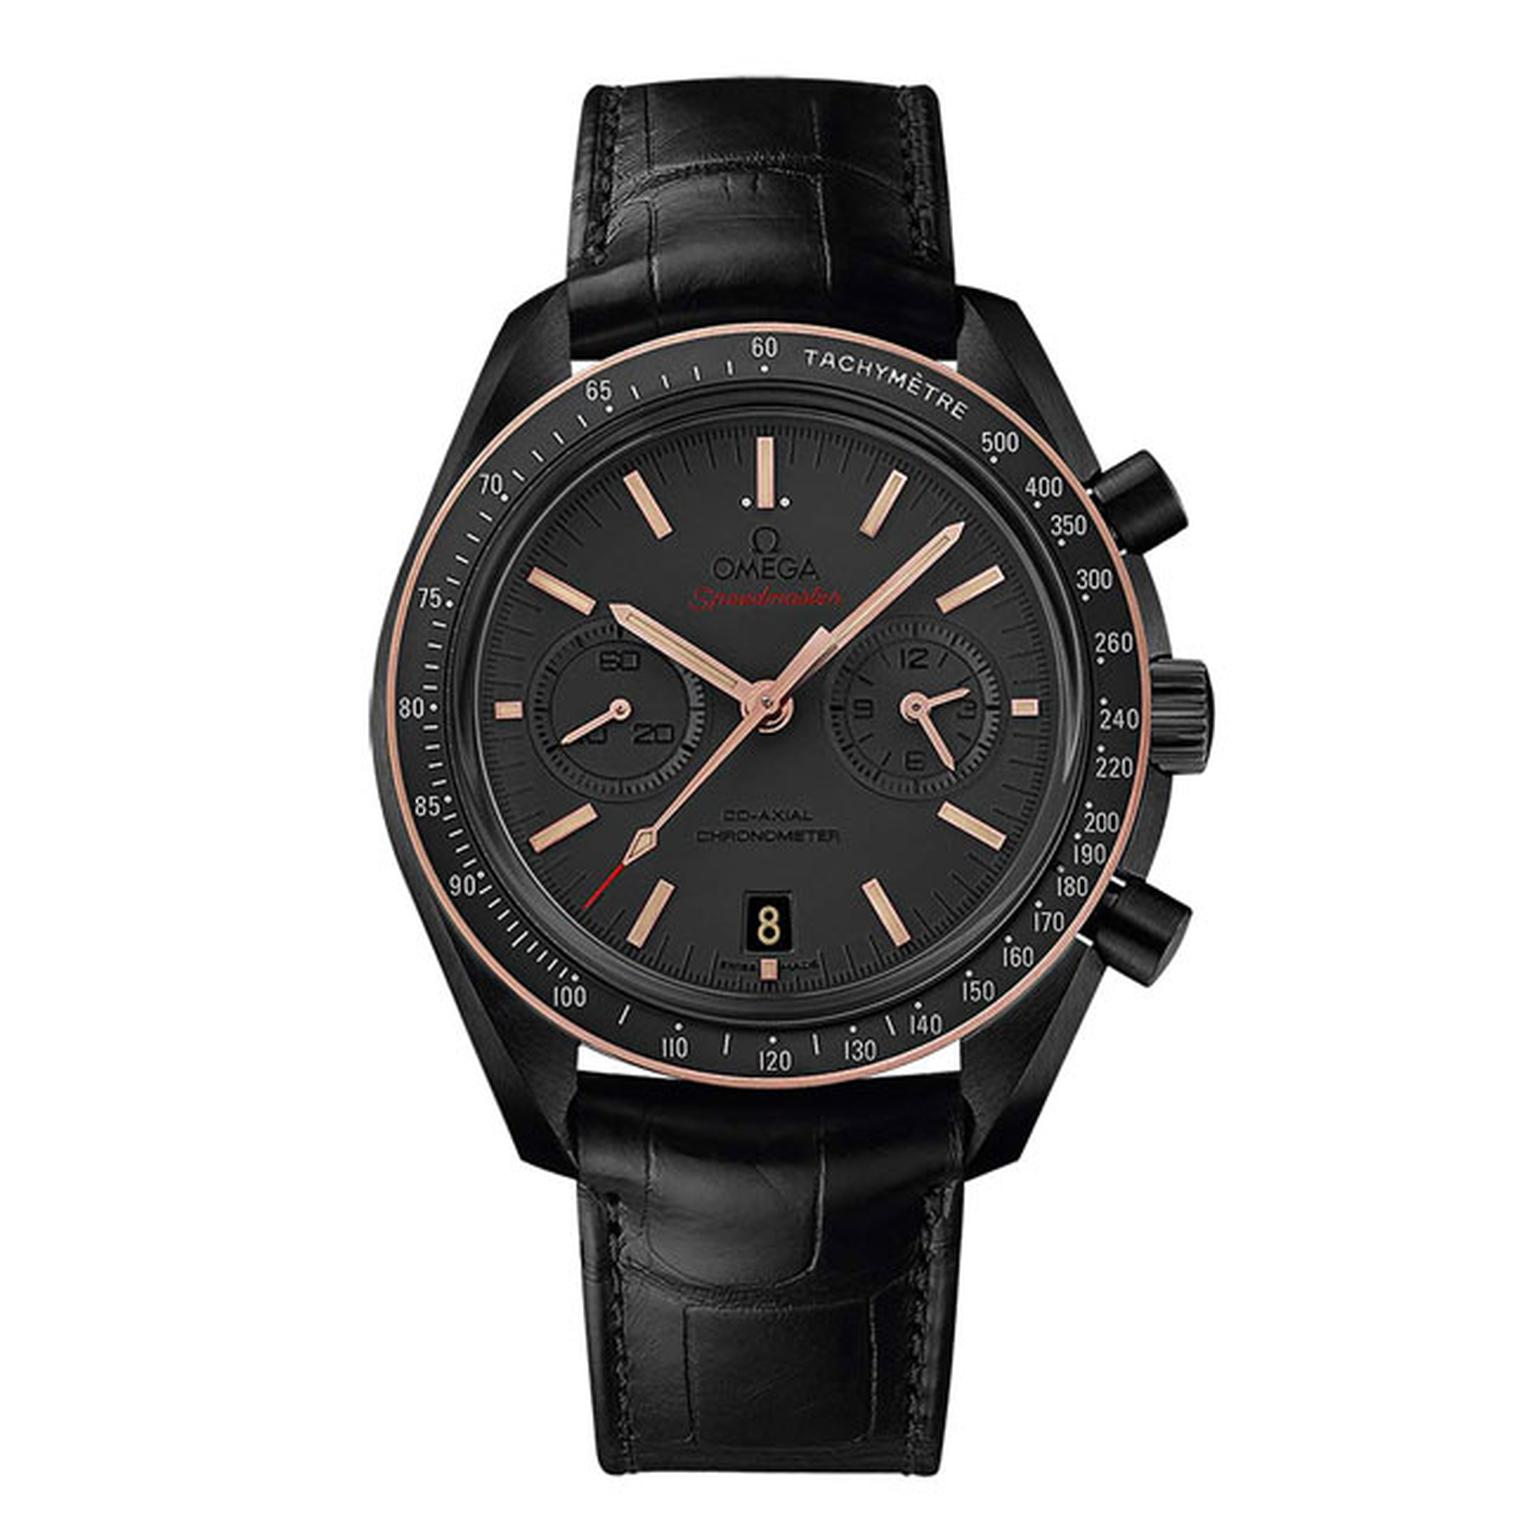 Omega-Dark-Side-of-the-Moon-watch-in-Sedna-Black_main